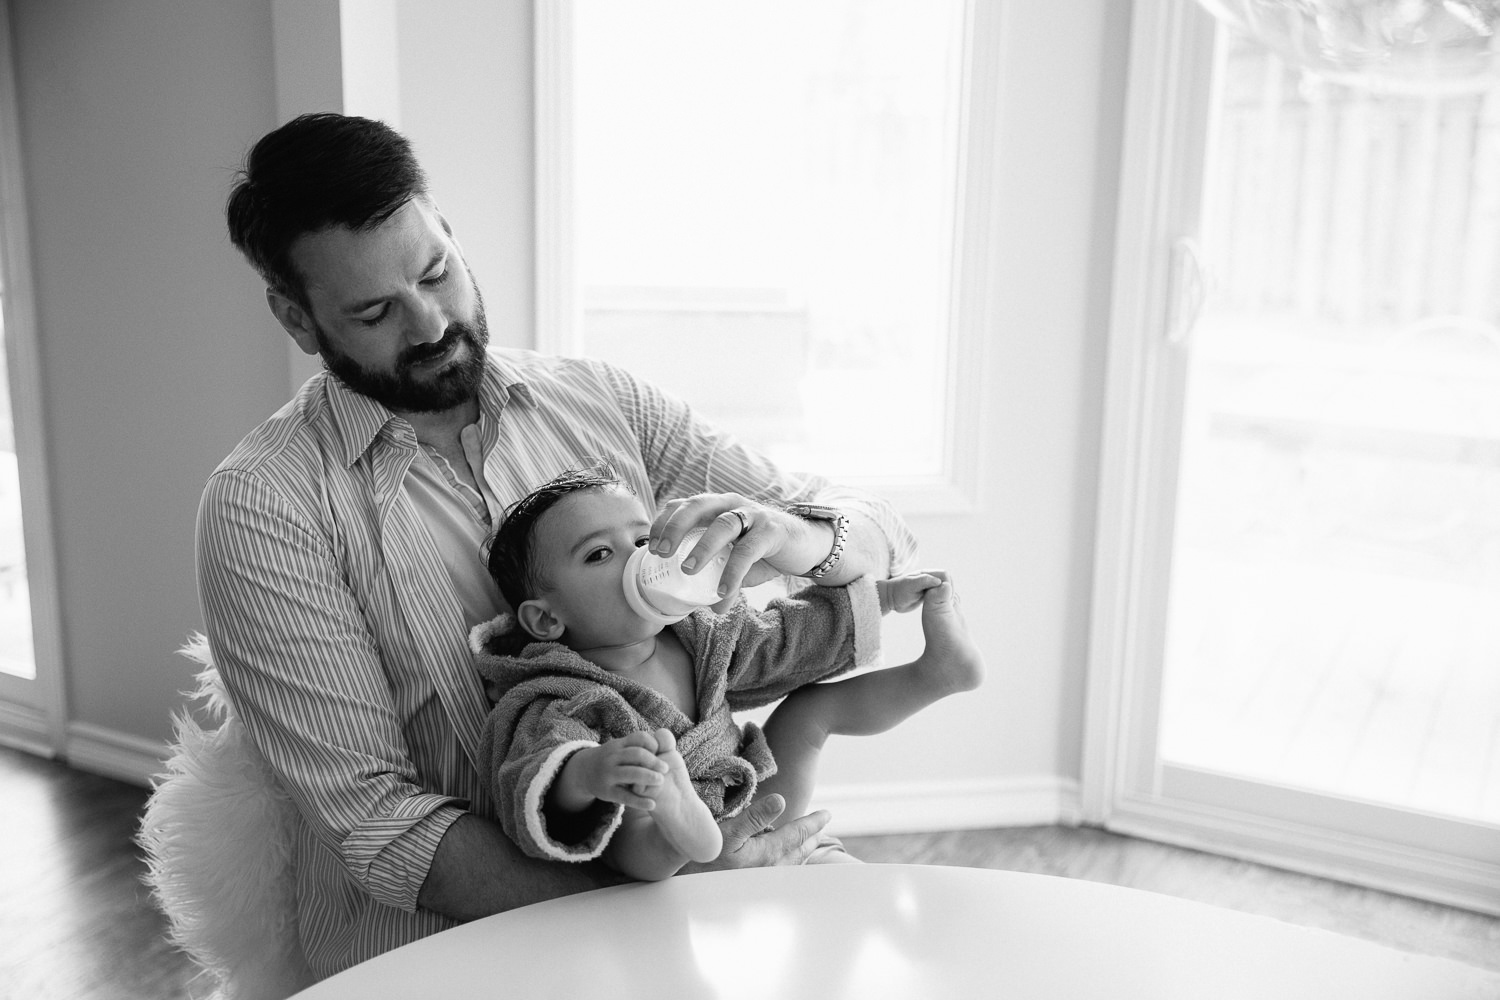 dad sitting at kitchen table holding 1 year old baby boy in hooded towel in his lap and feeding him bottle, son holding his feet as he eats - Newmarket In-Home Photos